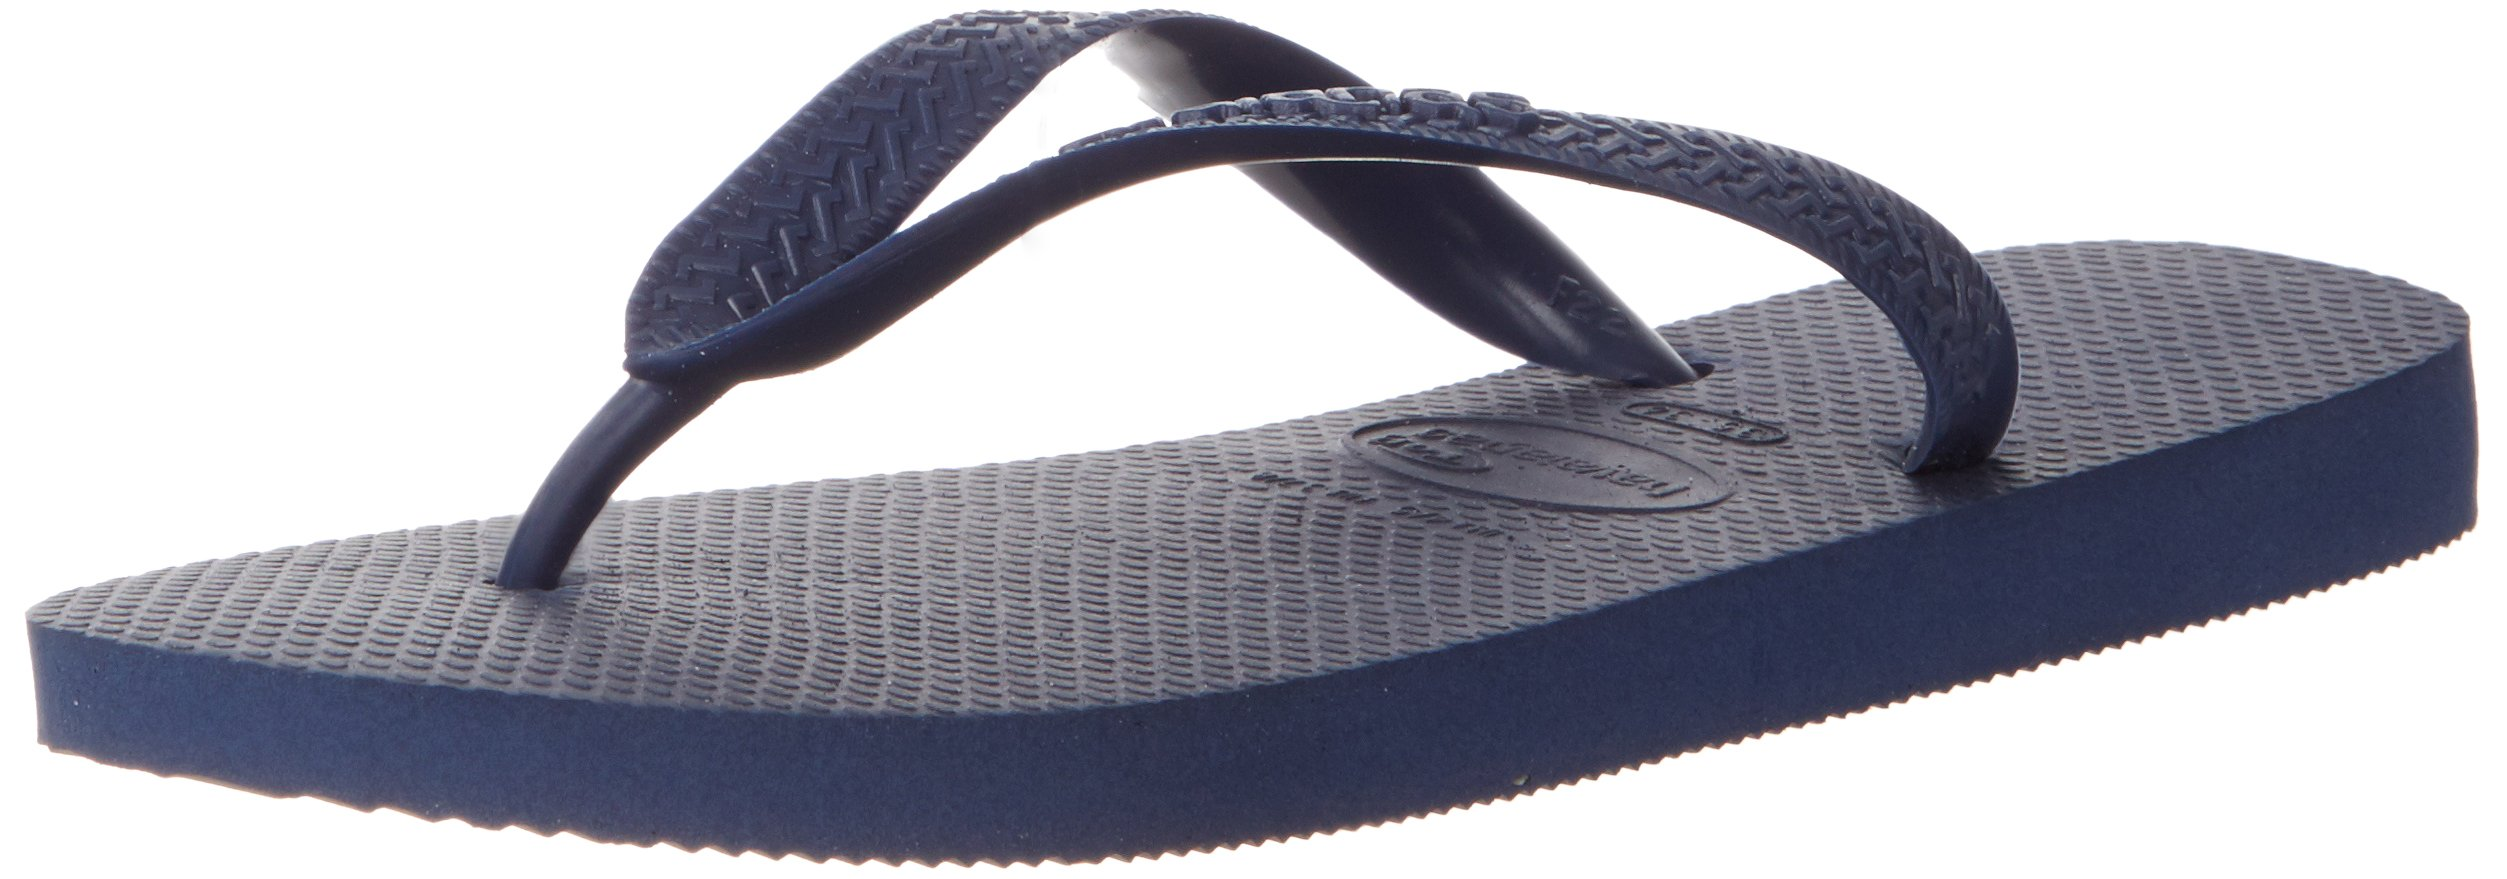 c20c90038 Get Quotations · Havaianas Women s Top Sandal